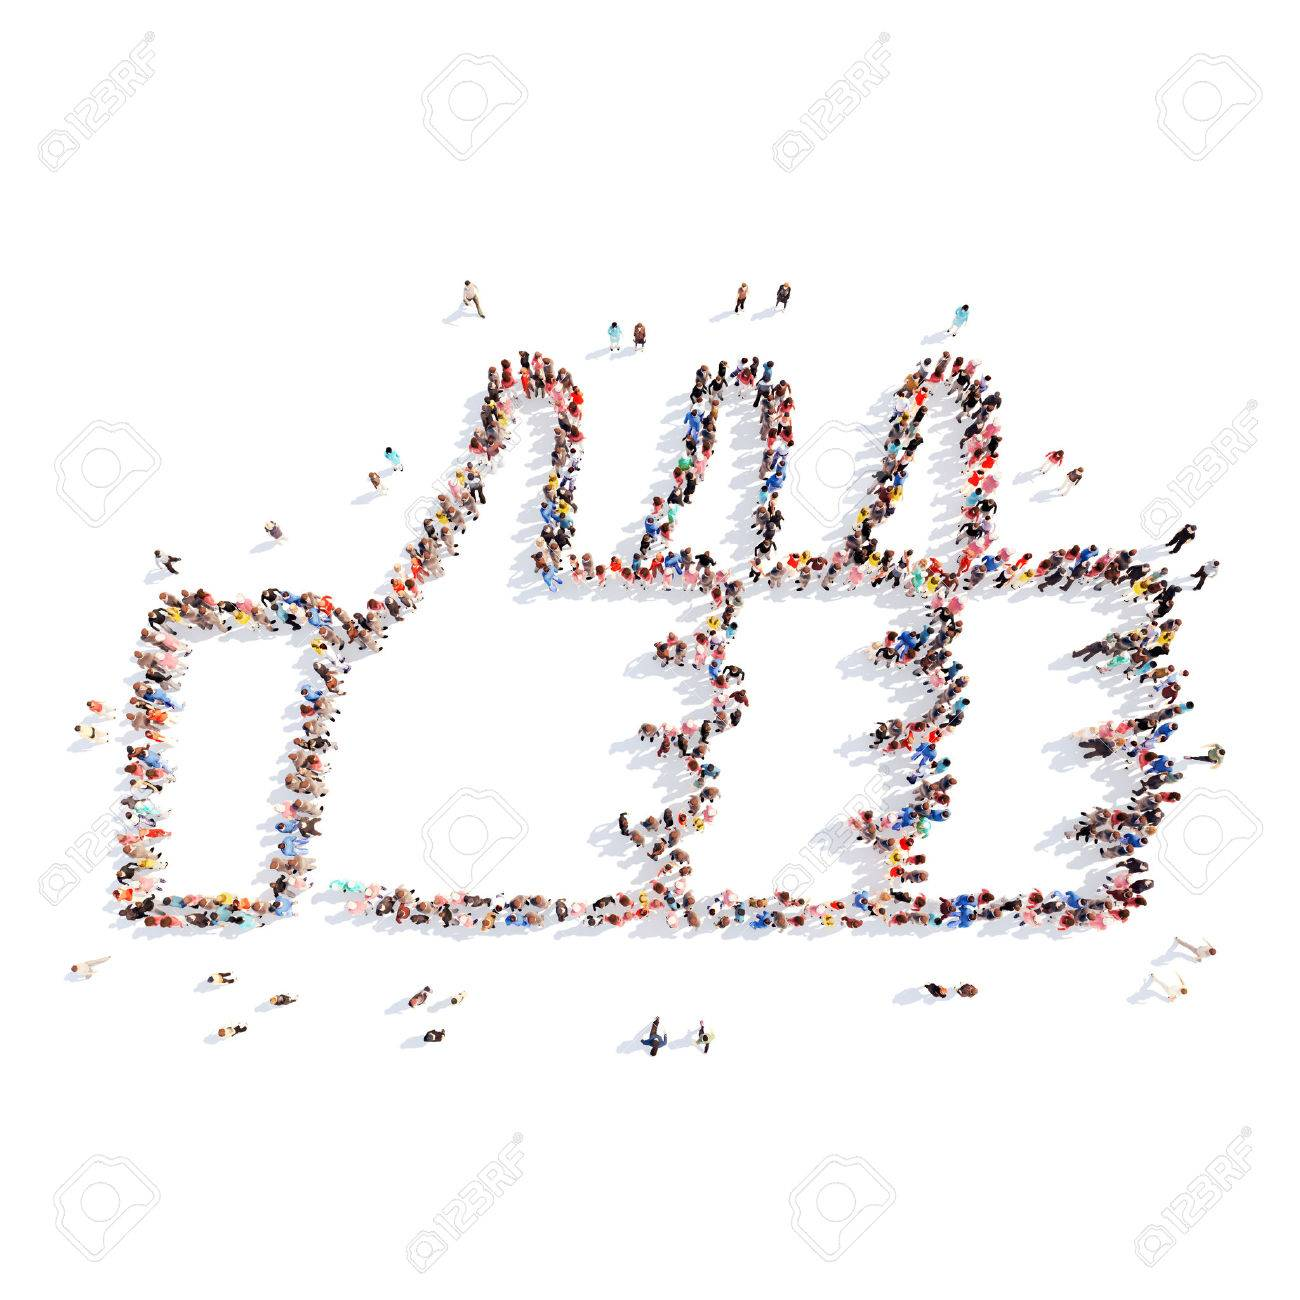 Large group of people in the form of a triple Like. Isolated, white background. - 39260901